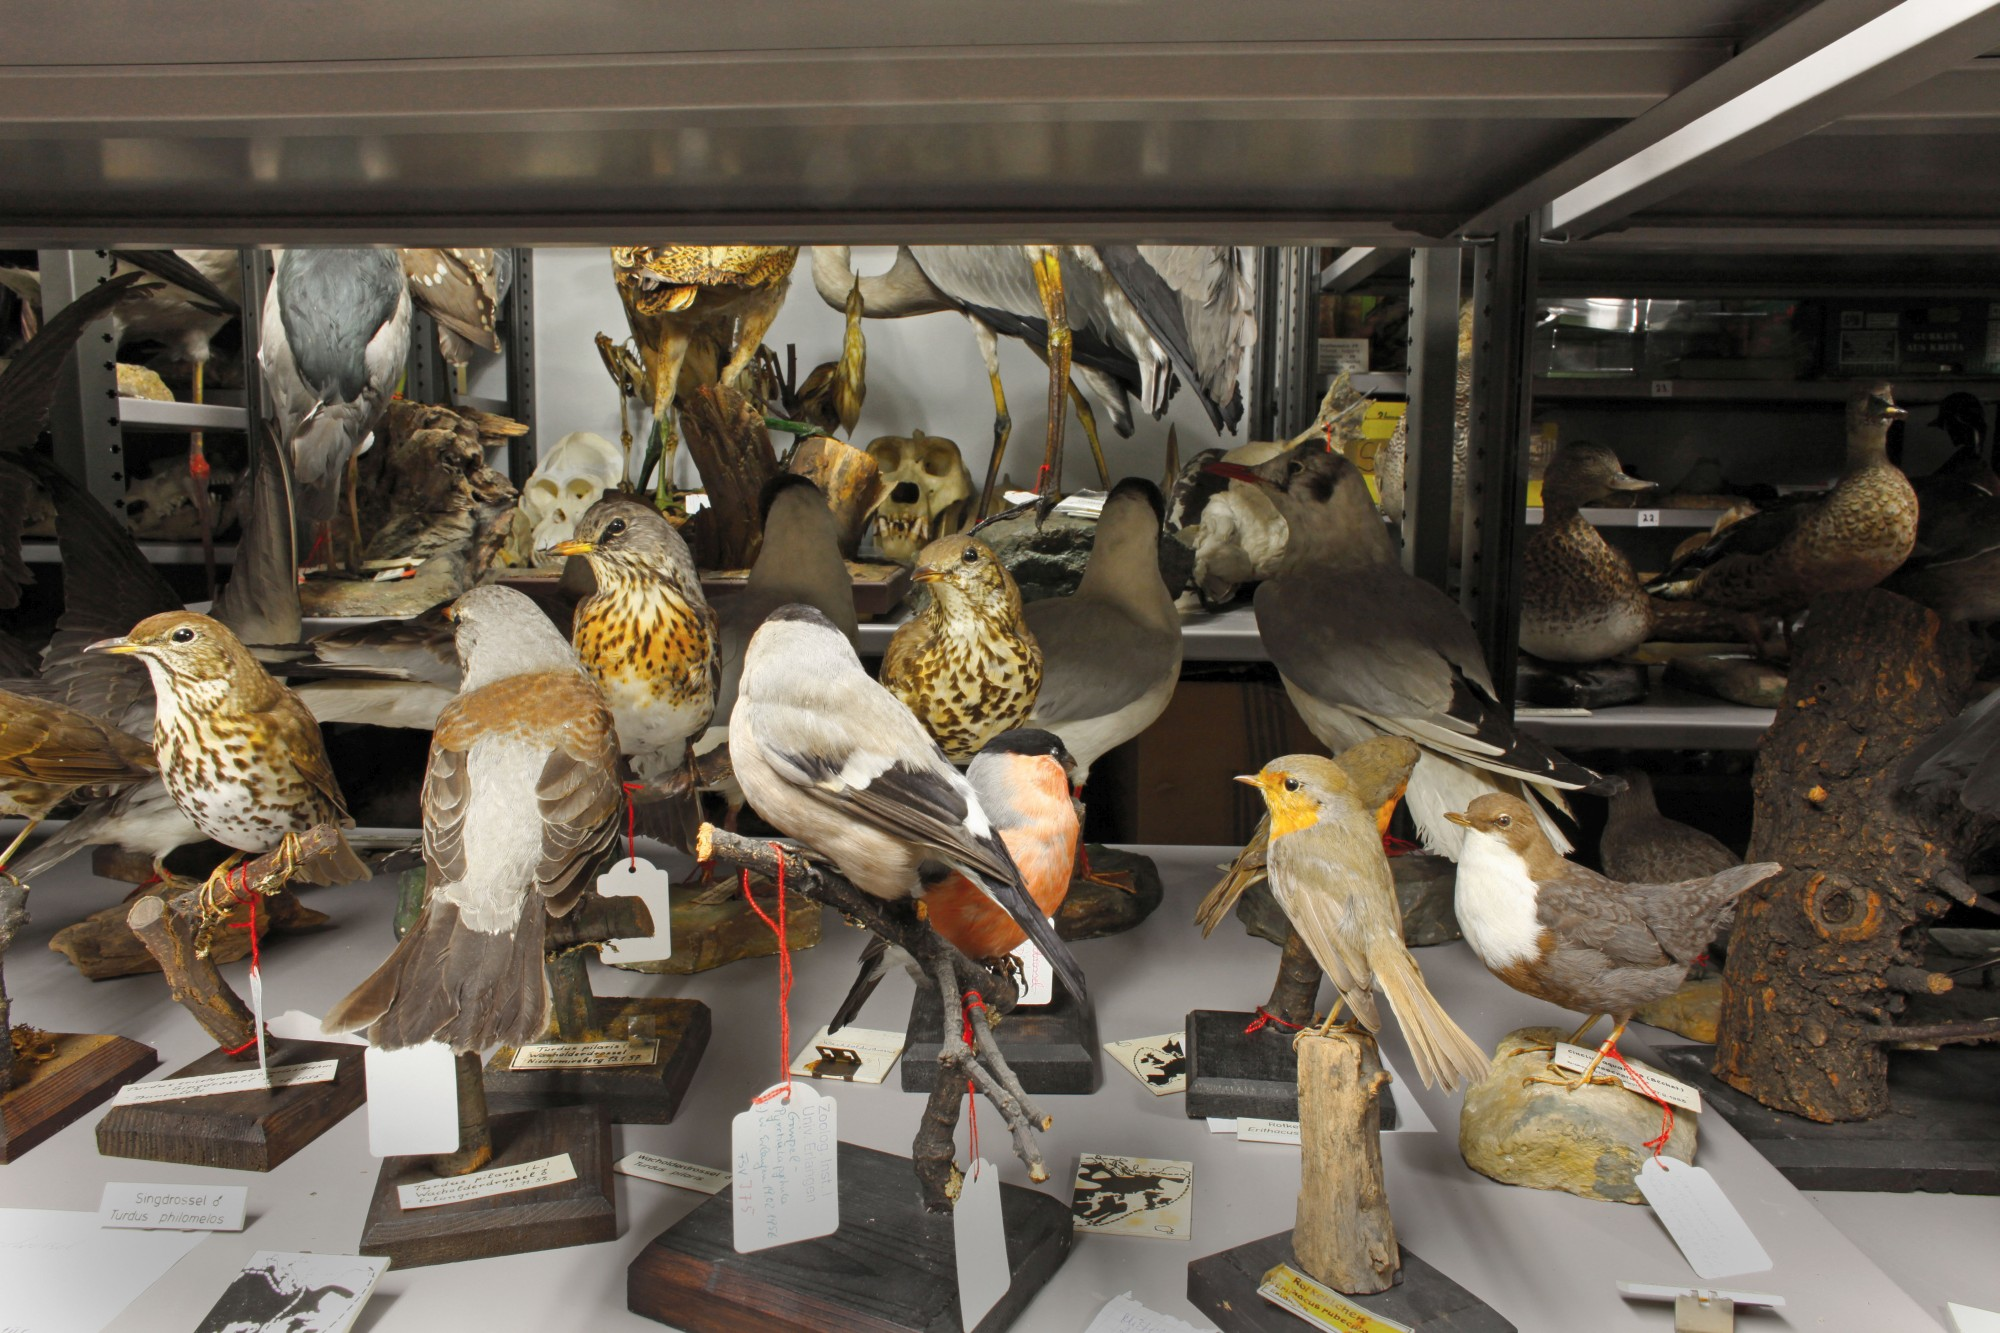 Stuffed birds in the Zoological Collection's storerooms (Image: Georg Pöhlein)